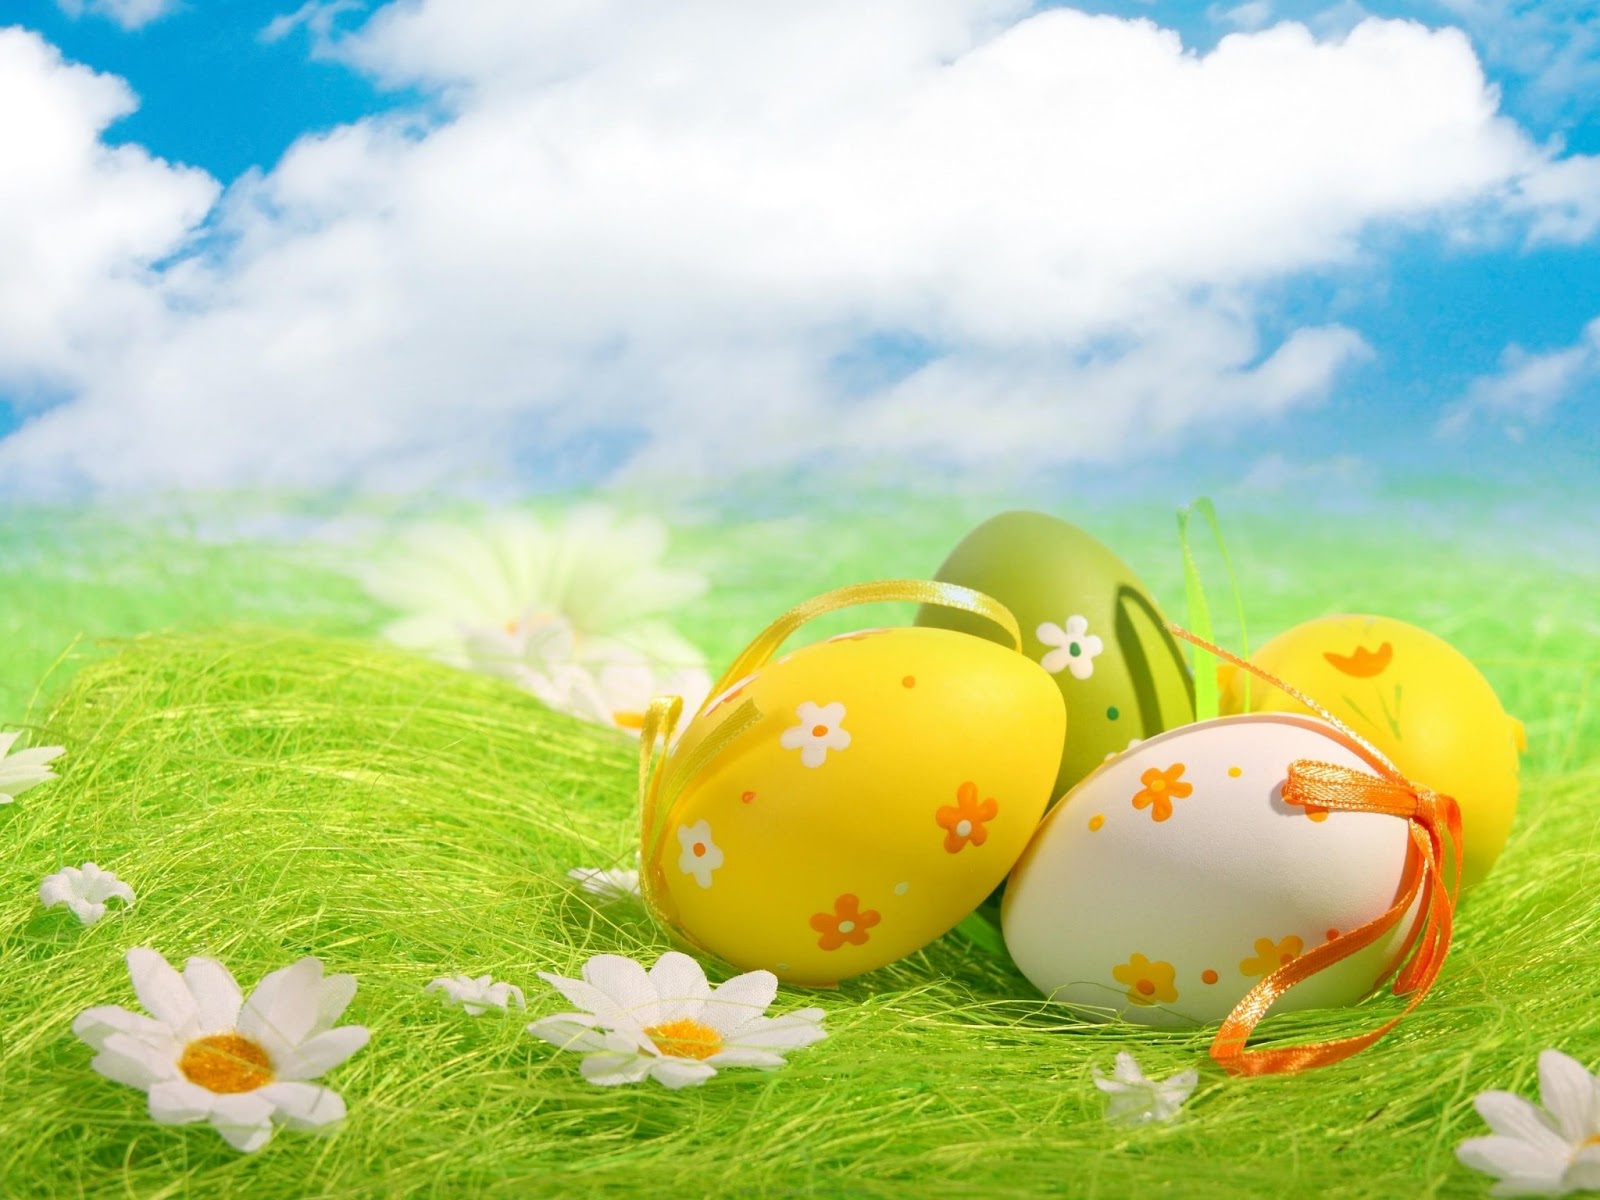 Easter wallpapershappy easter wallpapersreligious wallpaperseaster 1600x1200